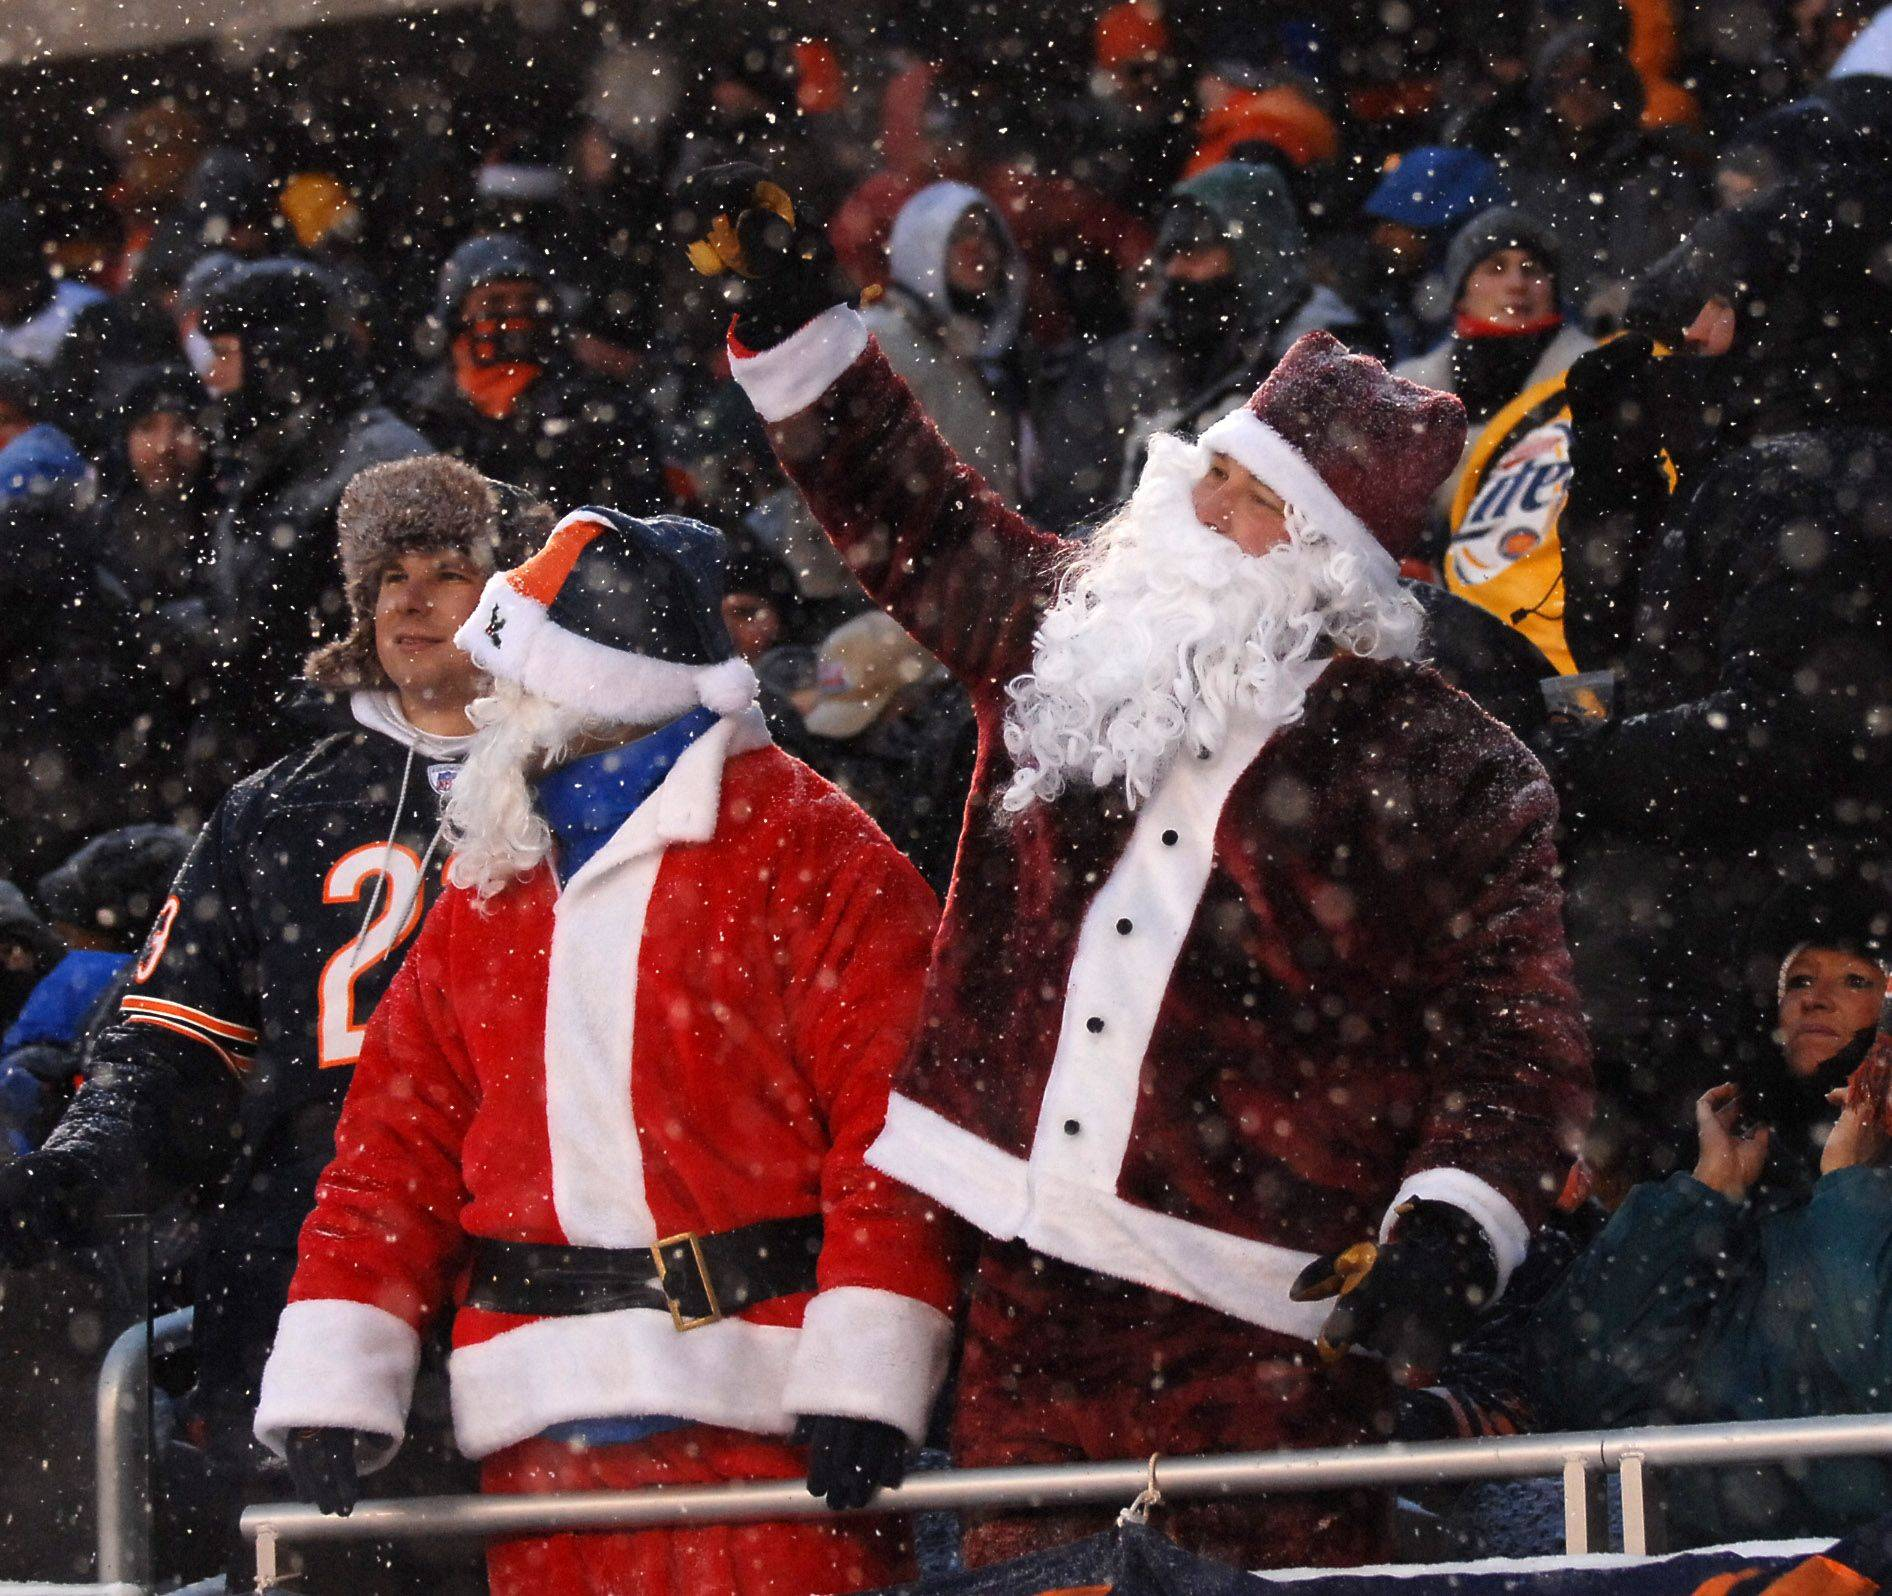 Two of the many Santas in attendance during Sunday's game between the Chicago Bears and the New England Patriots at Soldier Field.